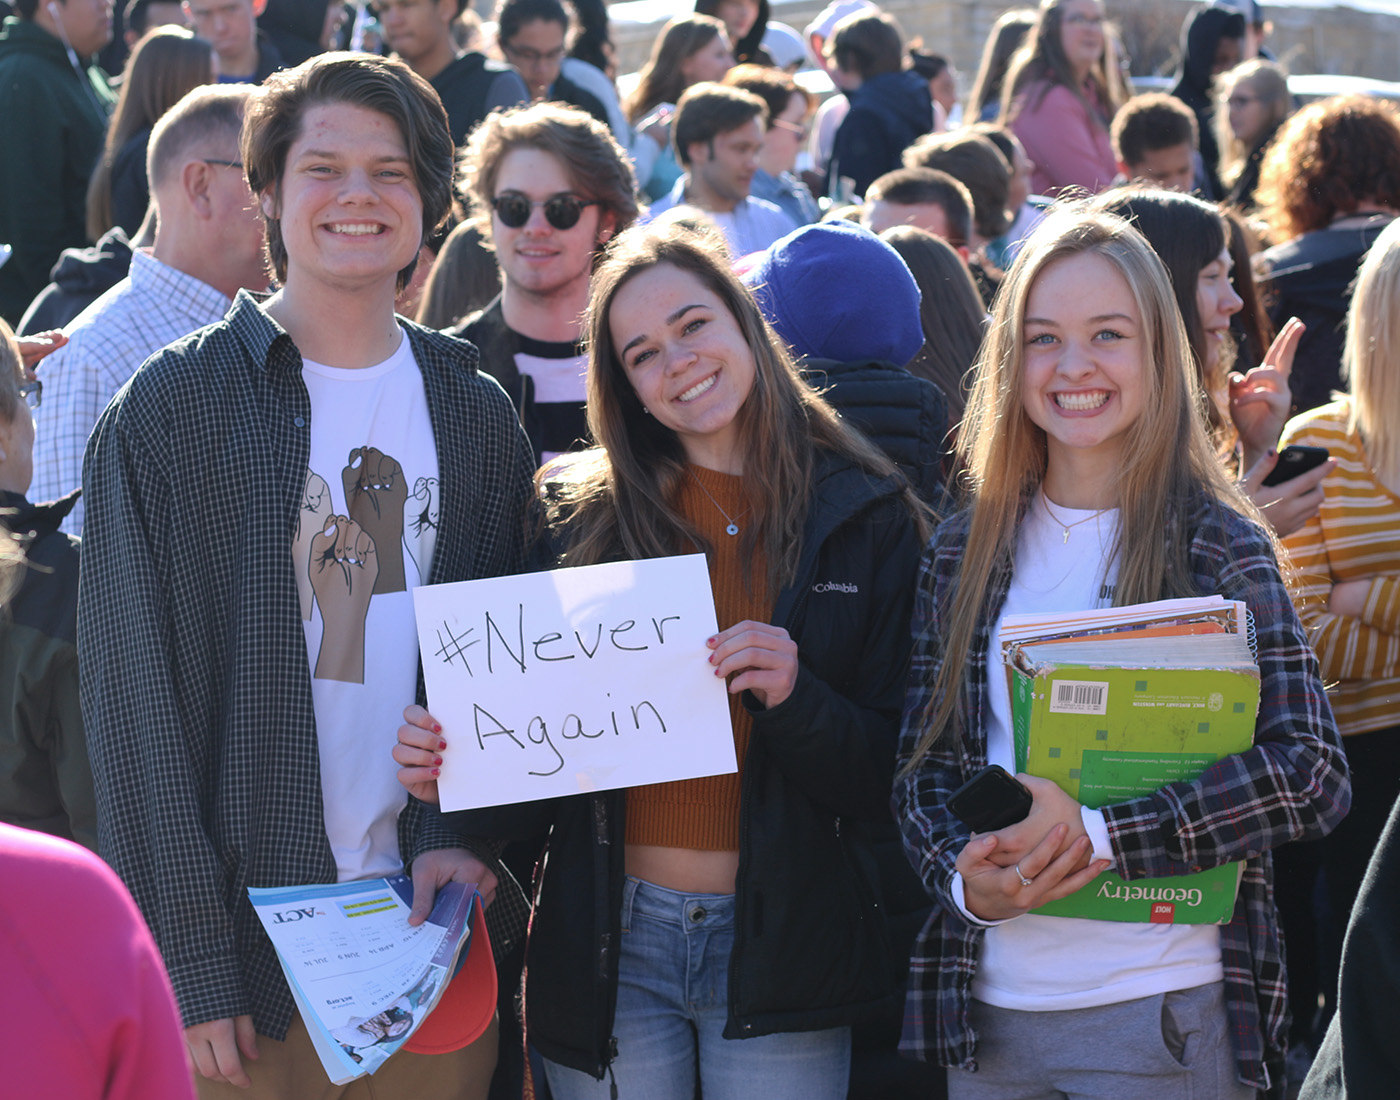 Noah Wagner, McKenzie Haberman and Cecilia Nicholson pose with a poster supporting #NeverAgain